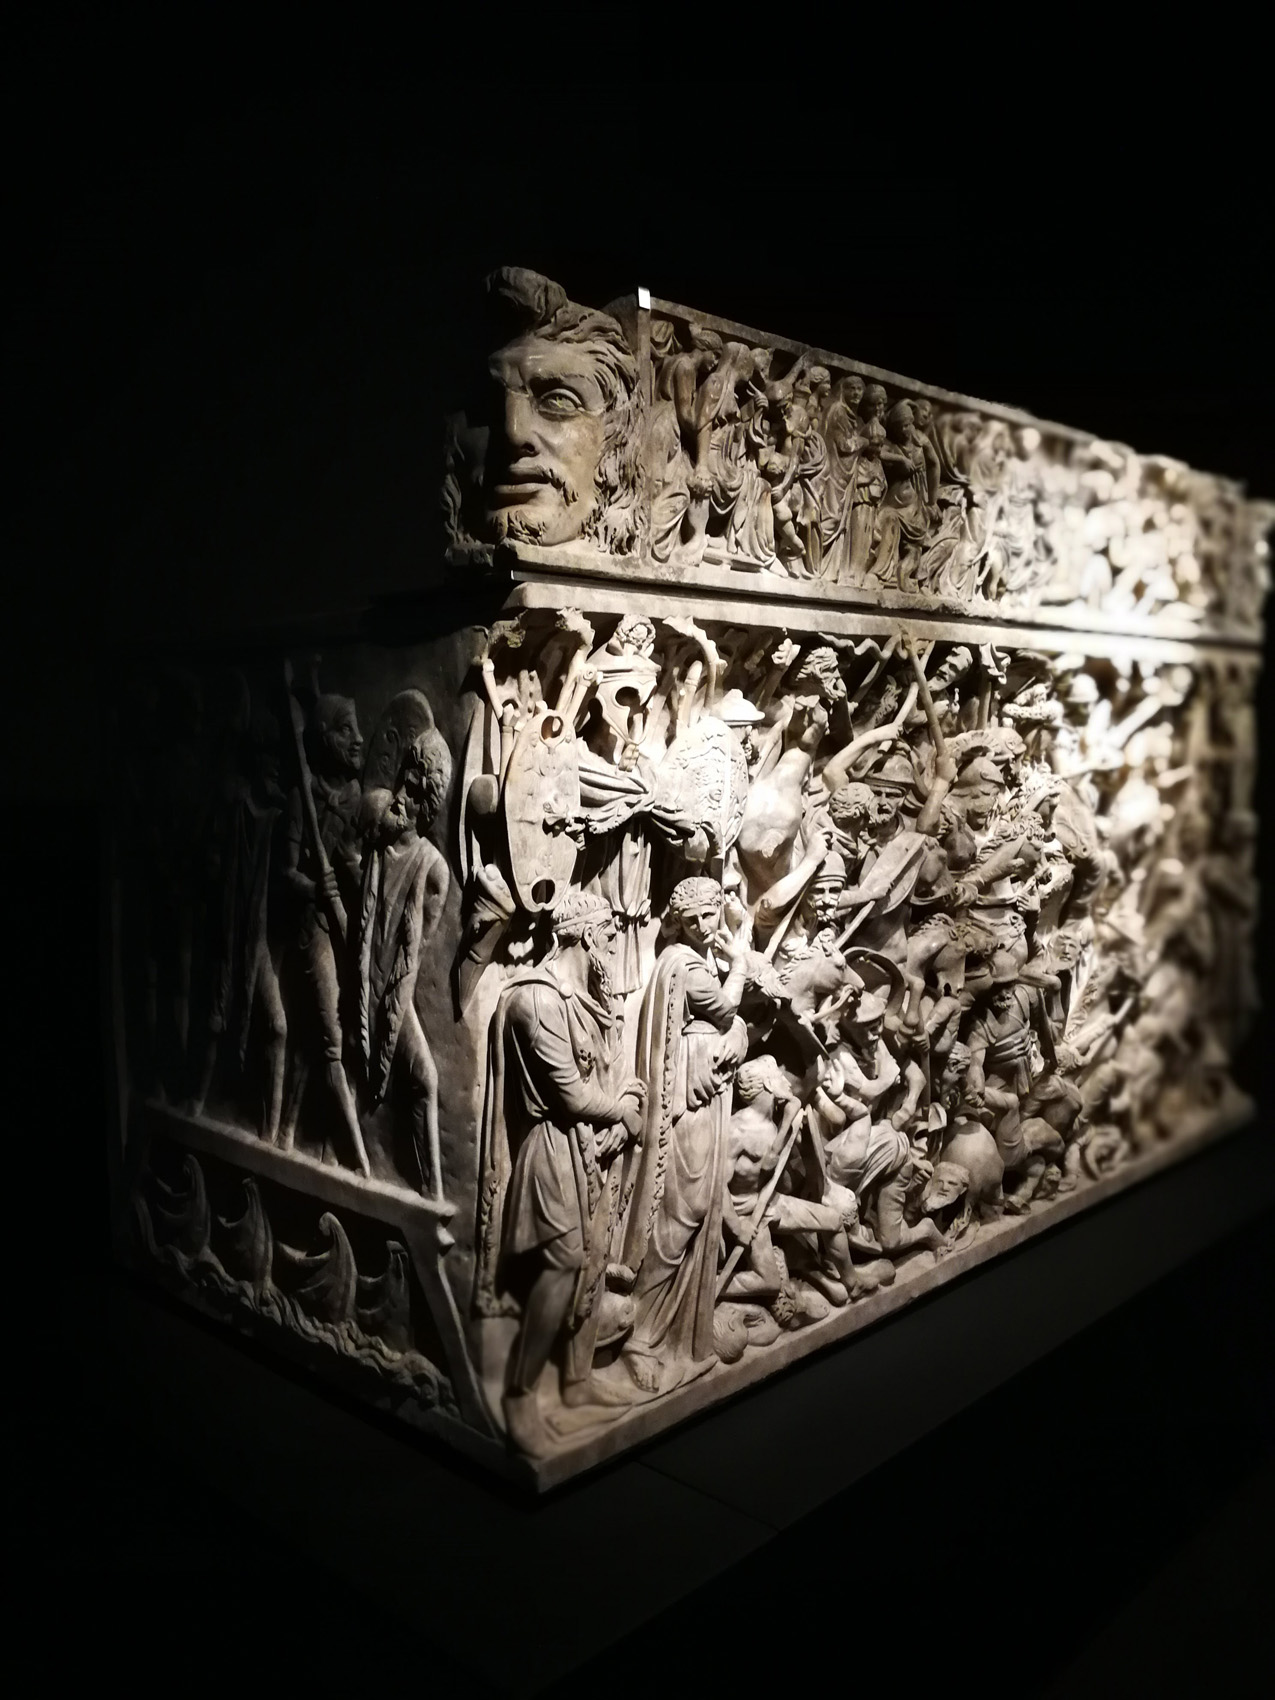 Portonaccio Sarcophagus, National Museum of Rome